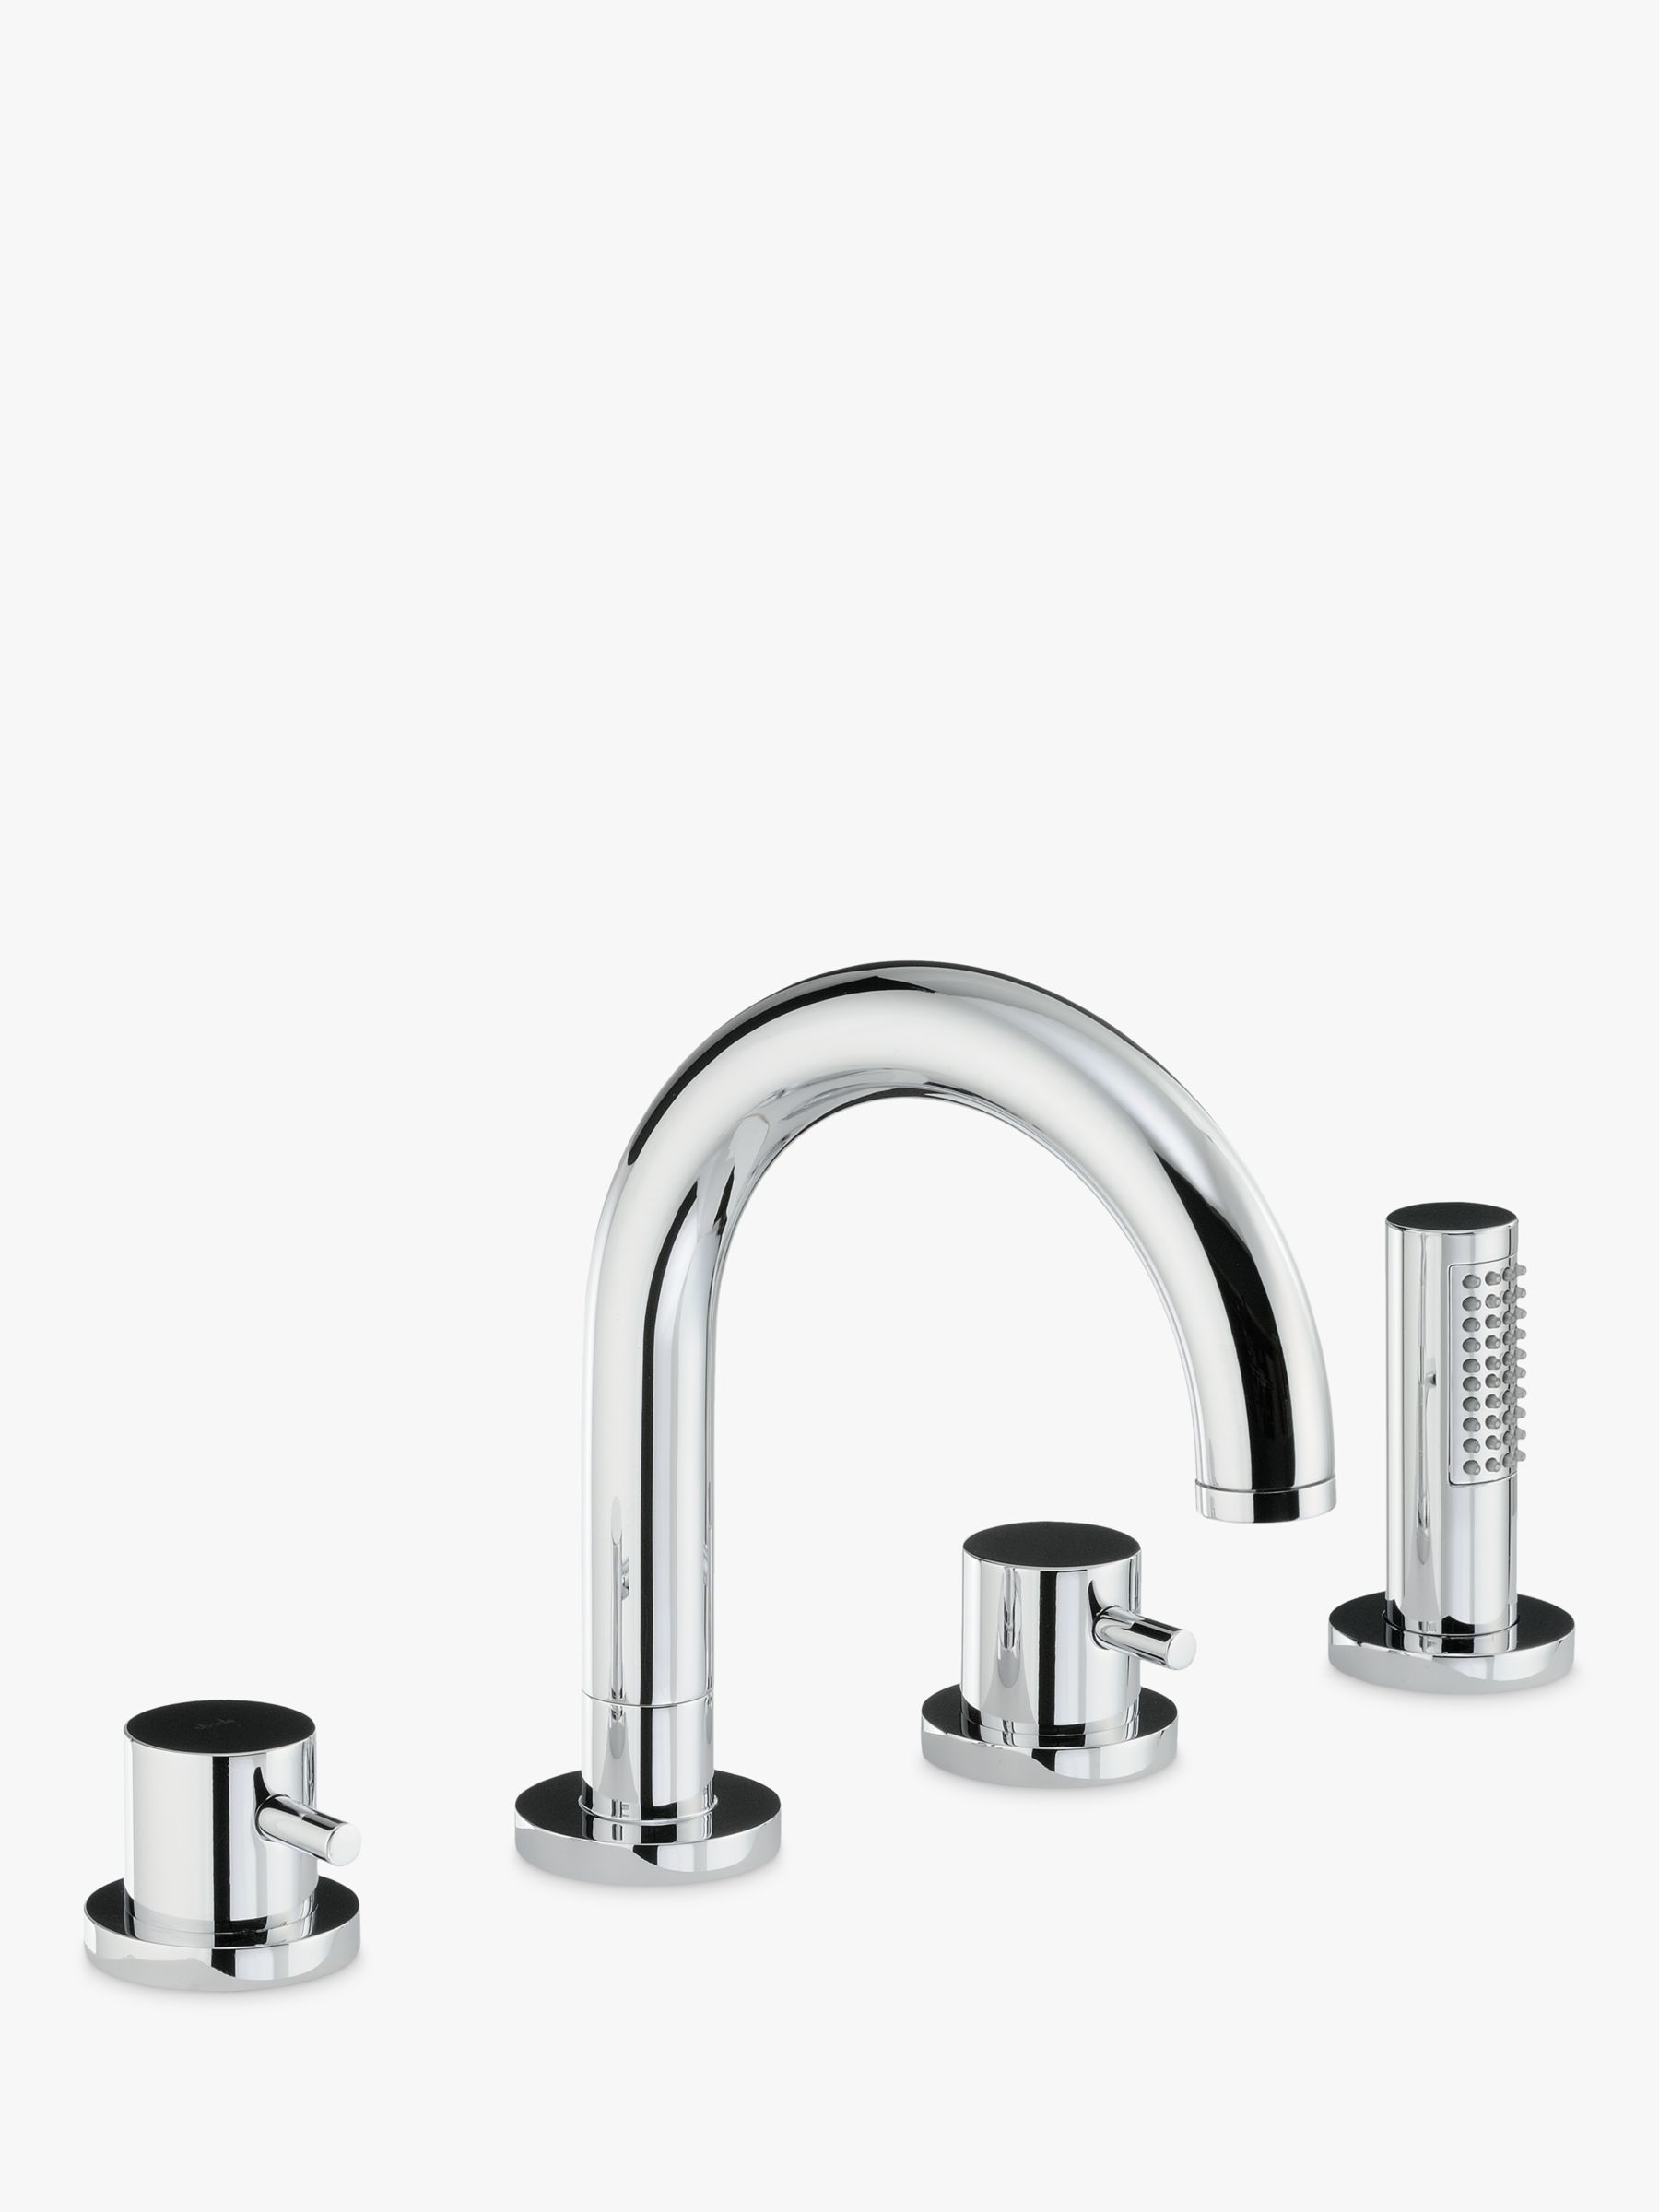 Abode Abode Harmonie Thermostatic Deck Mounted 4 Hole Bath Shower Mixer